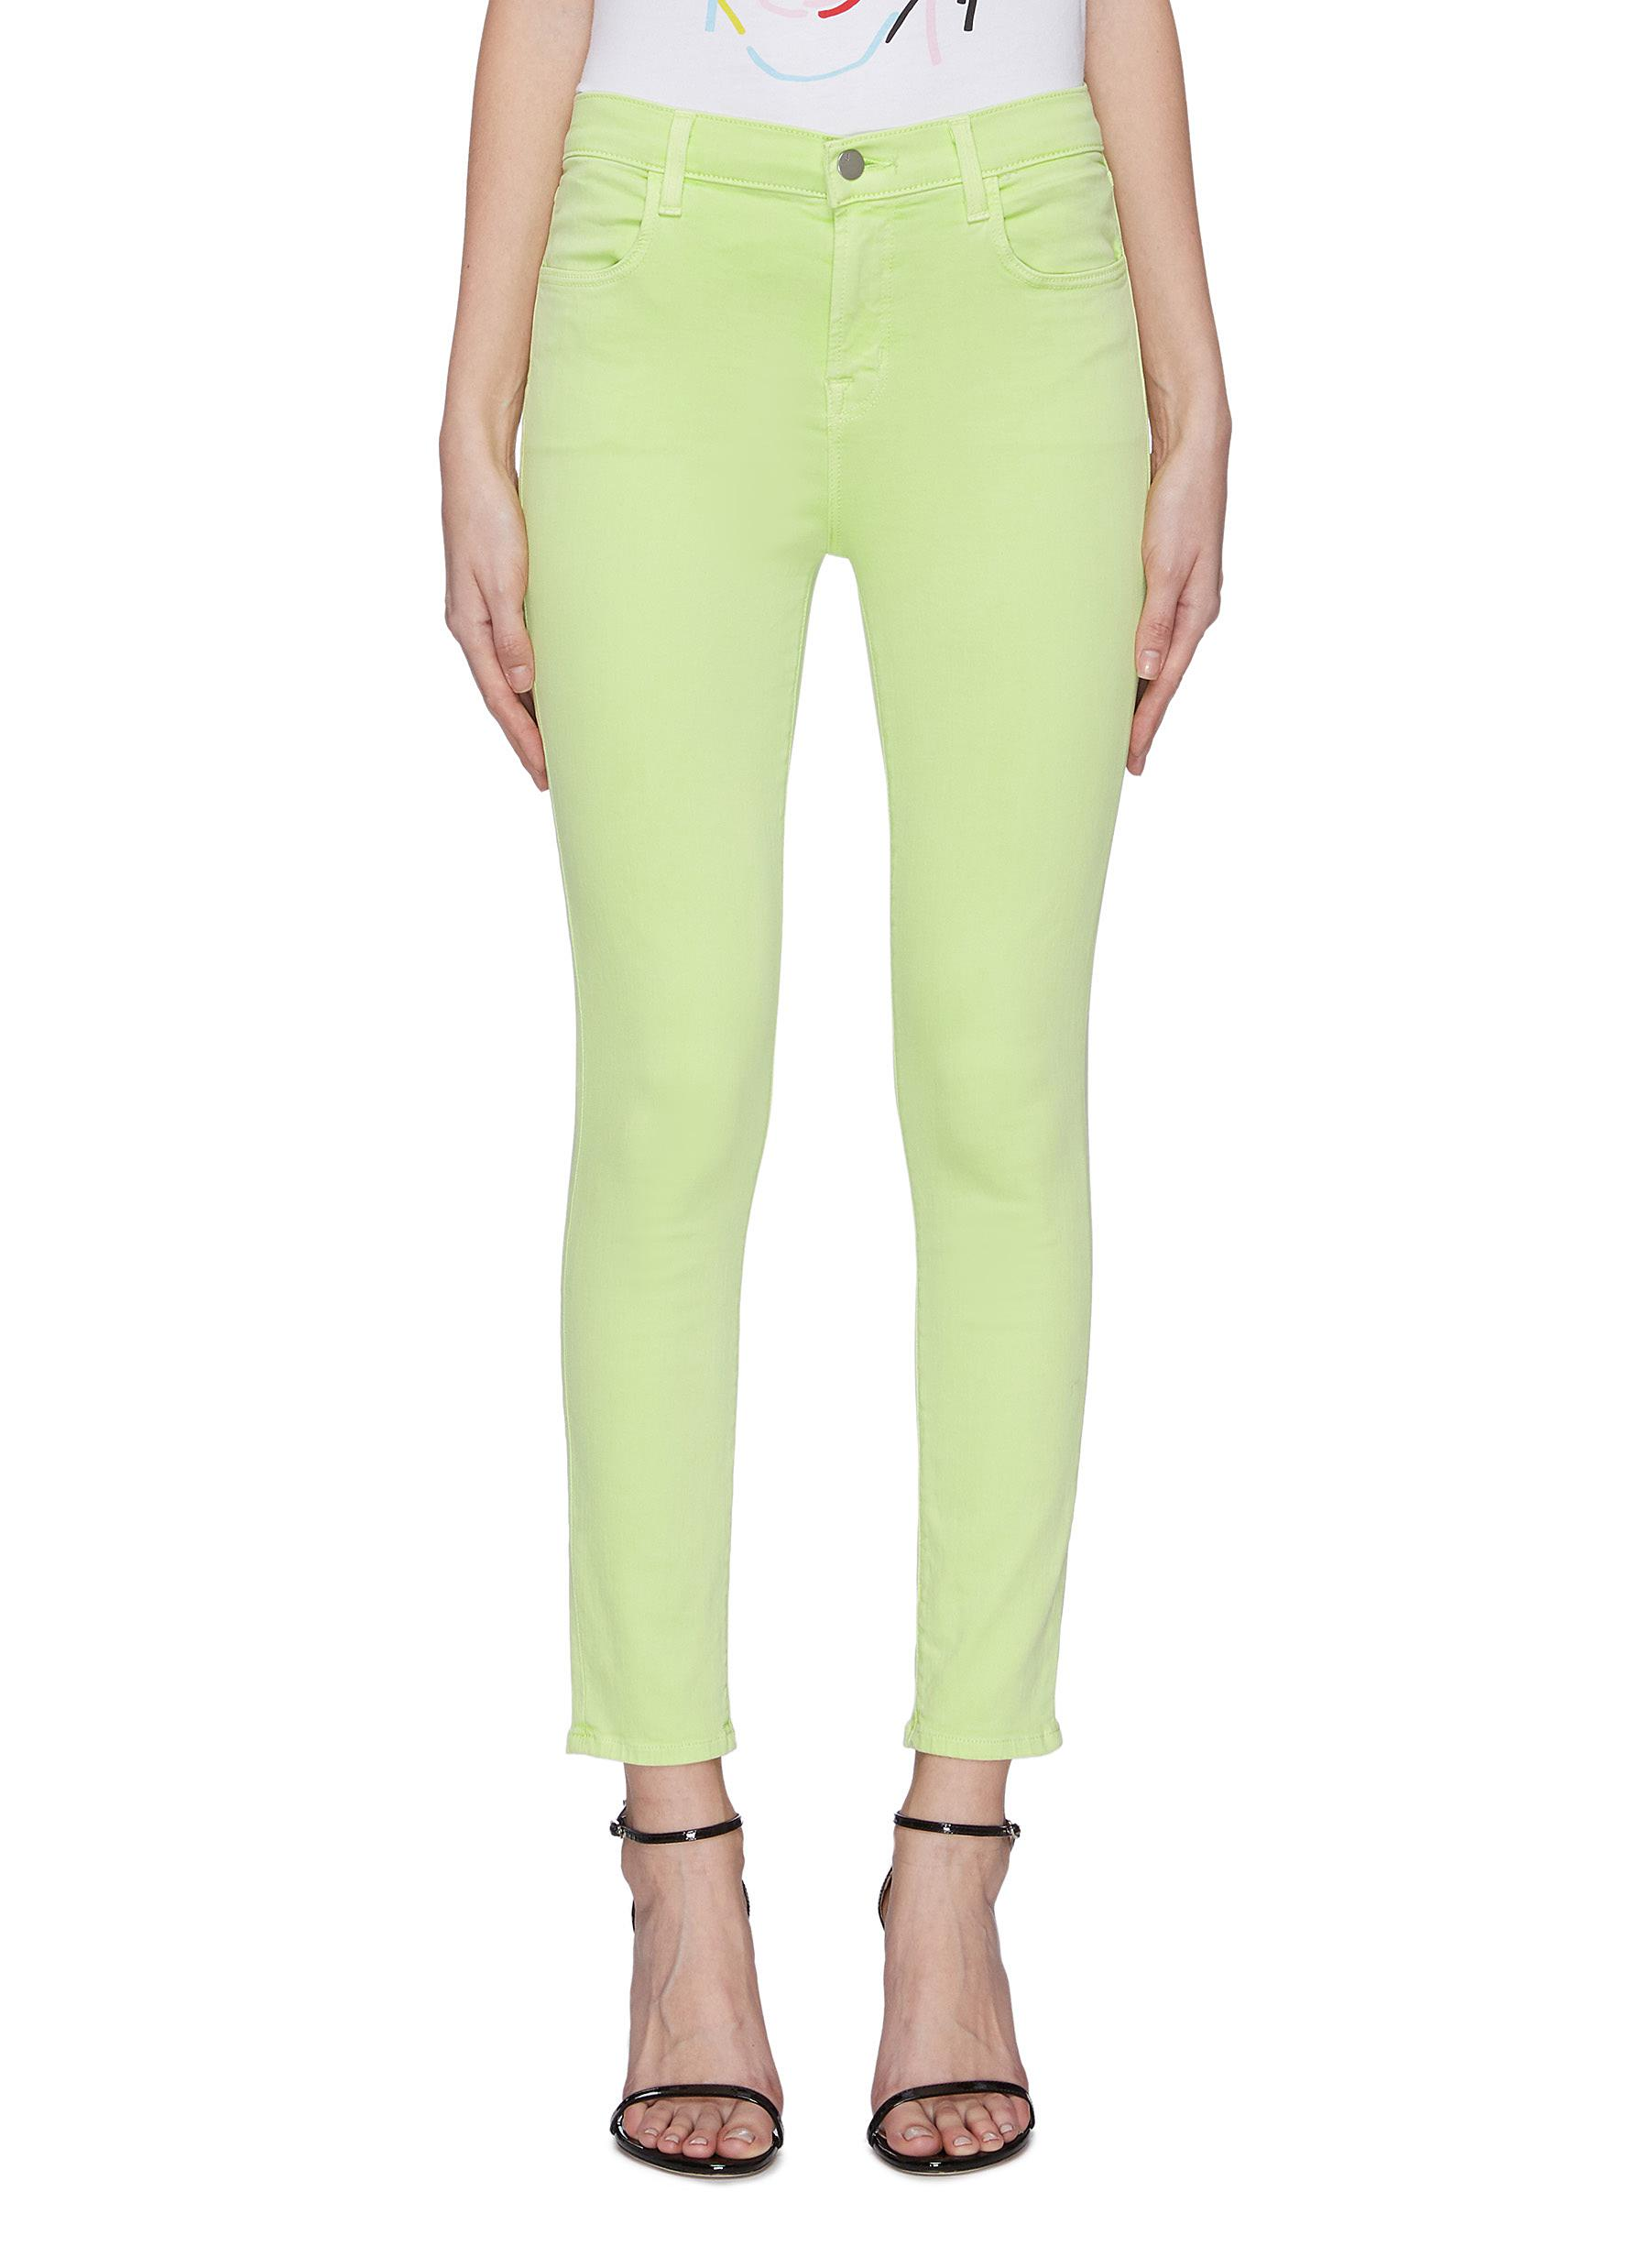 Buy J Brand Jeans 'Alana' high rise crop skinny jeans